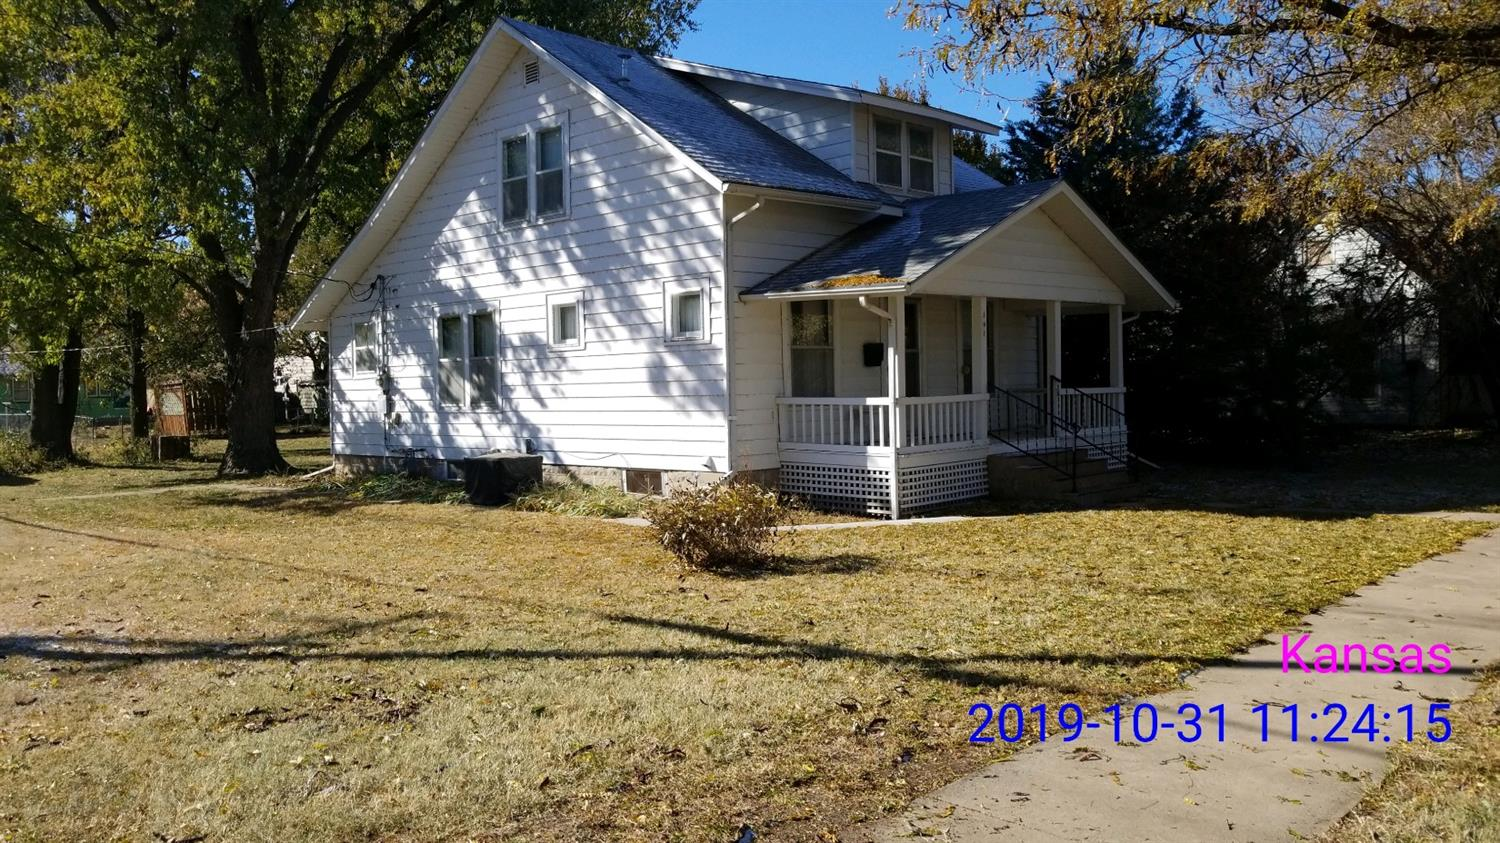 Home is reasonably priced. It has a large lot. Hardwood floors with beautiful wood work. Full unfinished basement. CH/CA are approximately 3 years old. Must see!